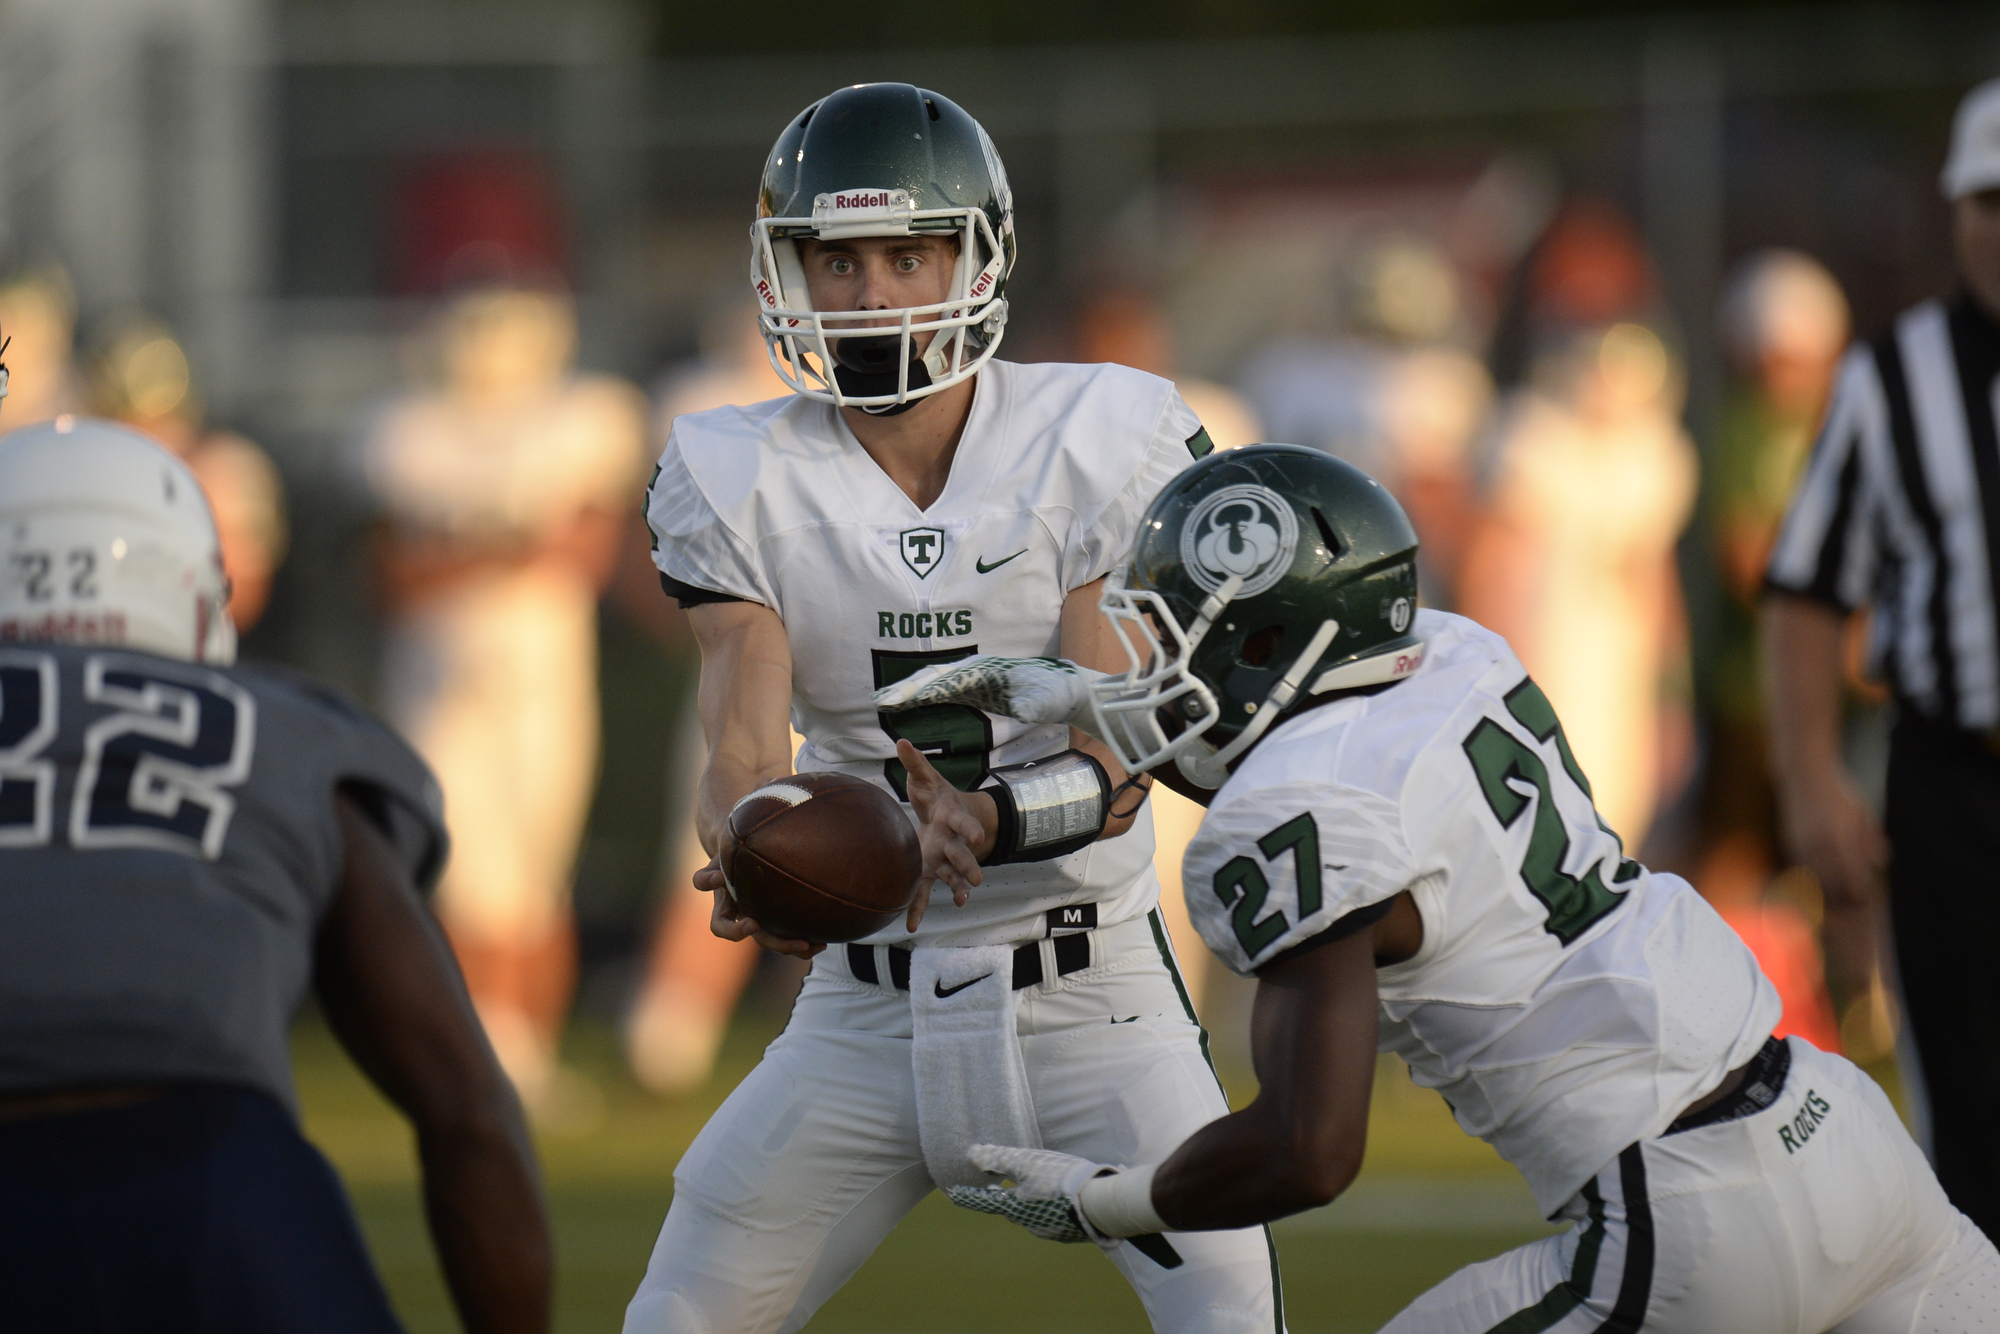 QB Spencer Blackburn hands off the ball to RB Jovan Smith during theTrinity football game against Lafayette in Lexington, KY on Friday, September 3, 2016. Mike Weaver/Special to the CJ